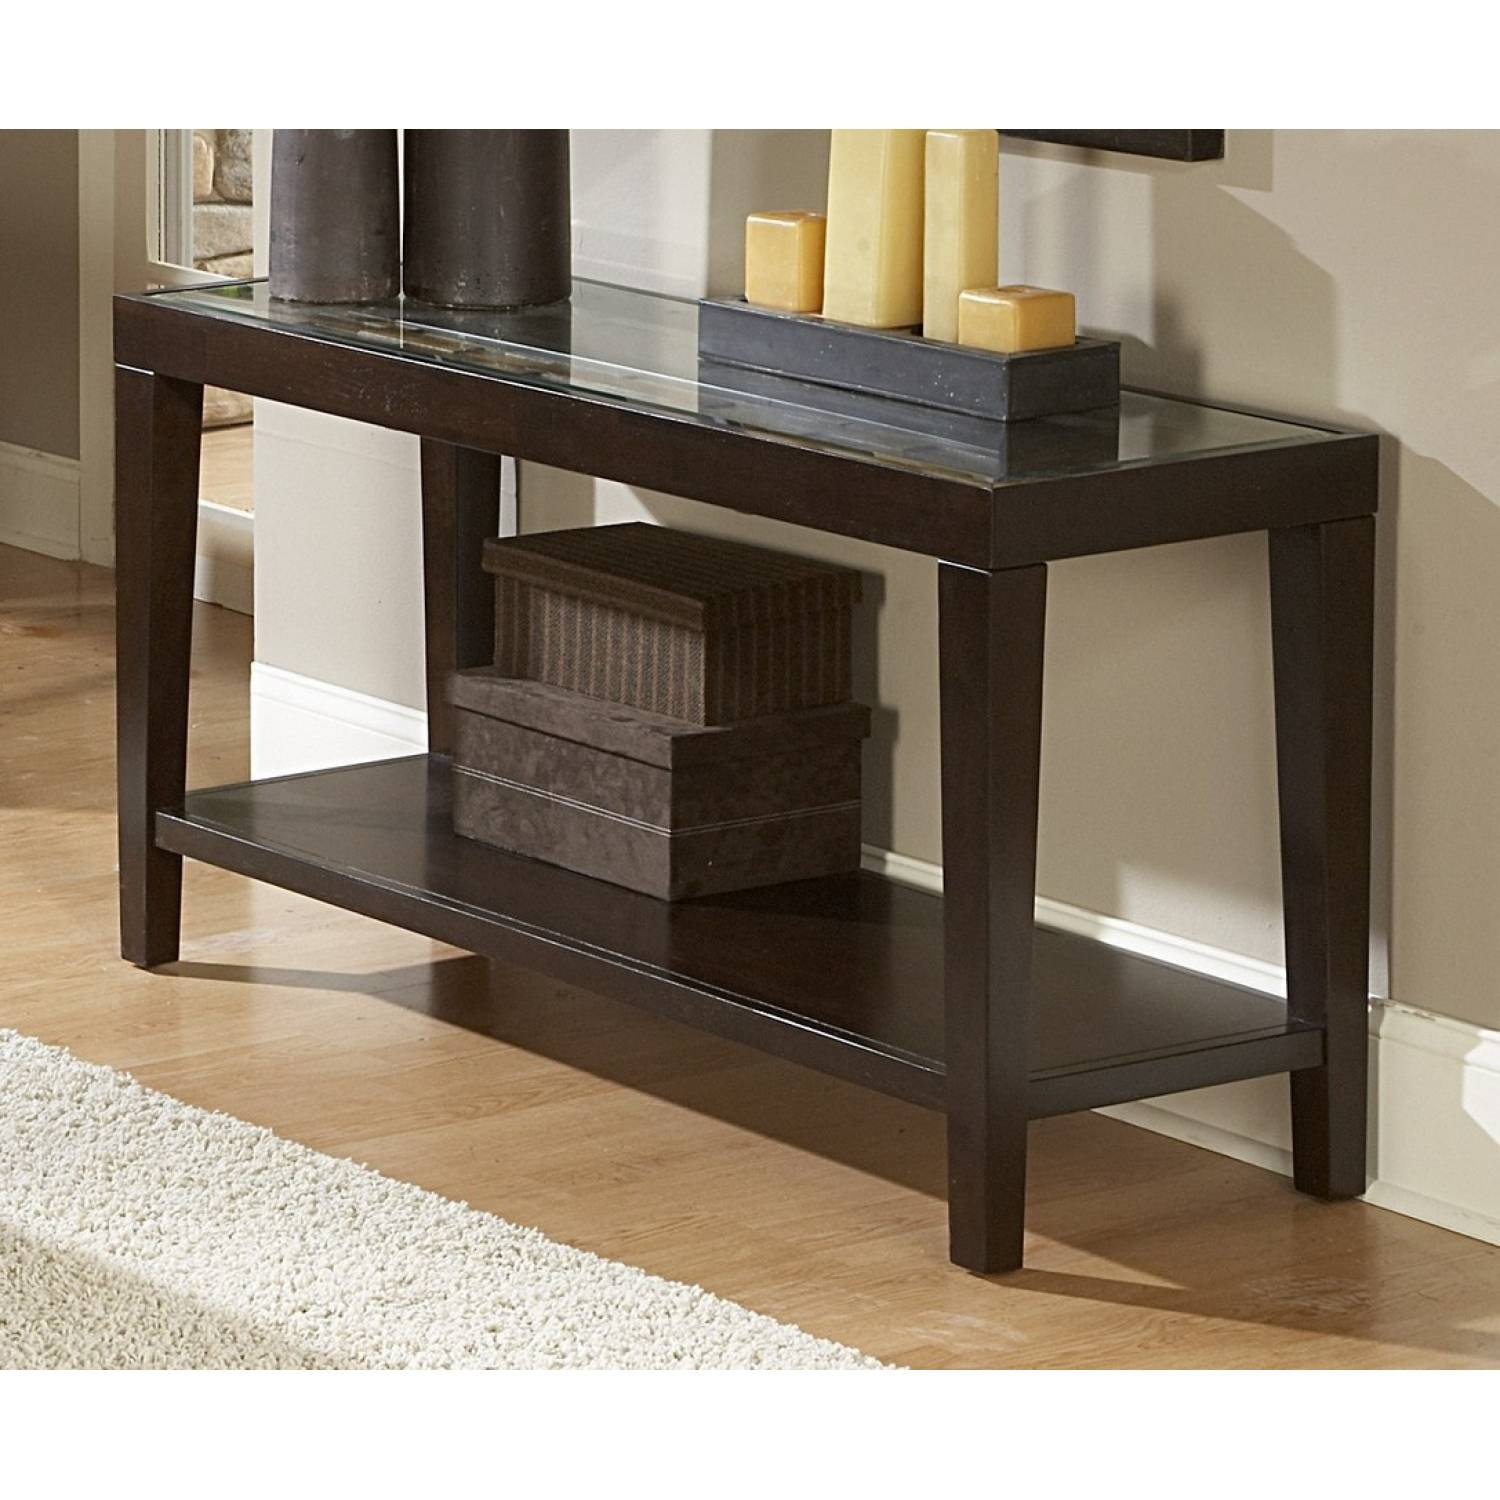 sofa table with glass top - vincent sofa table with glass top